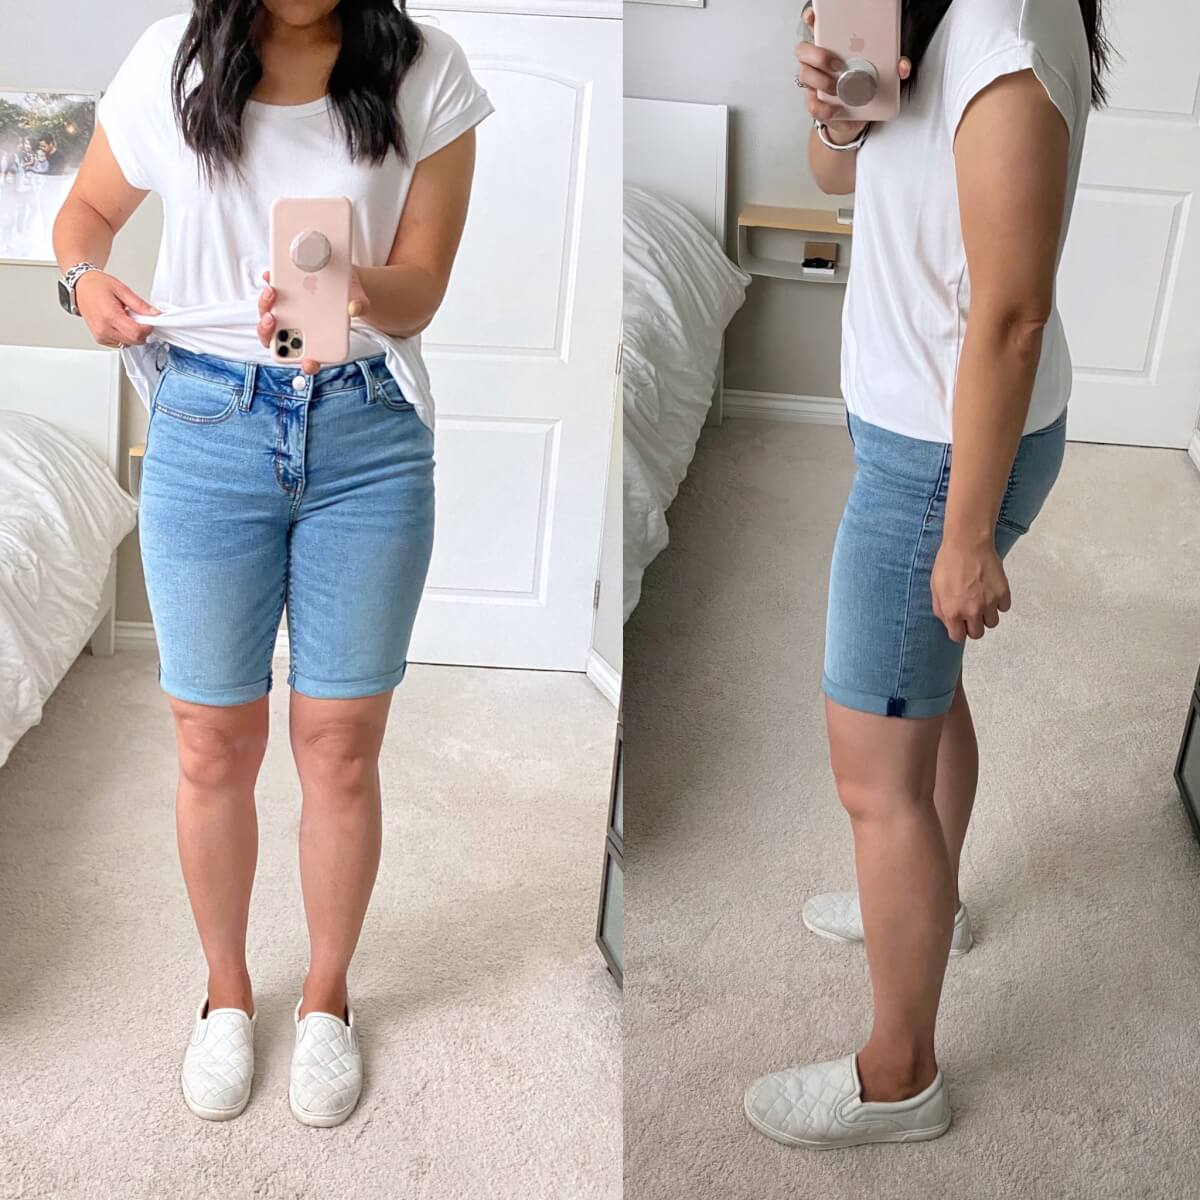 Casual Outfit: JCPenney bermuda shorts + white tee + white slip-on sneakers